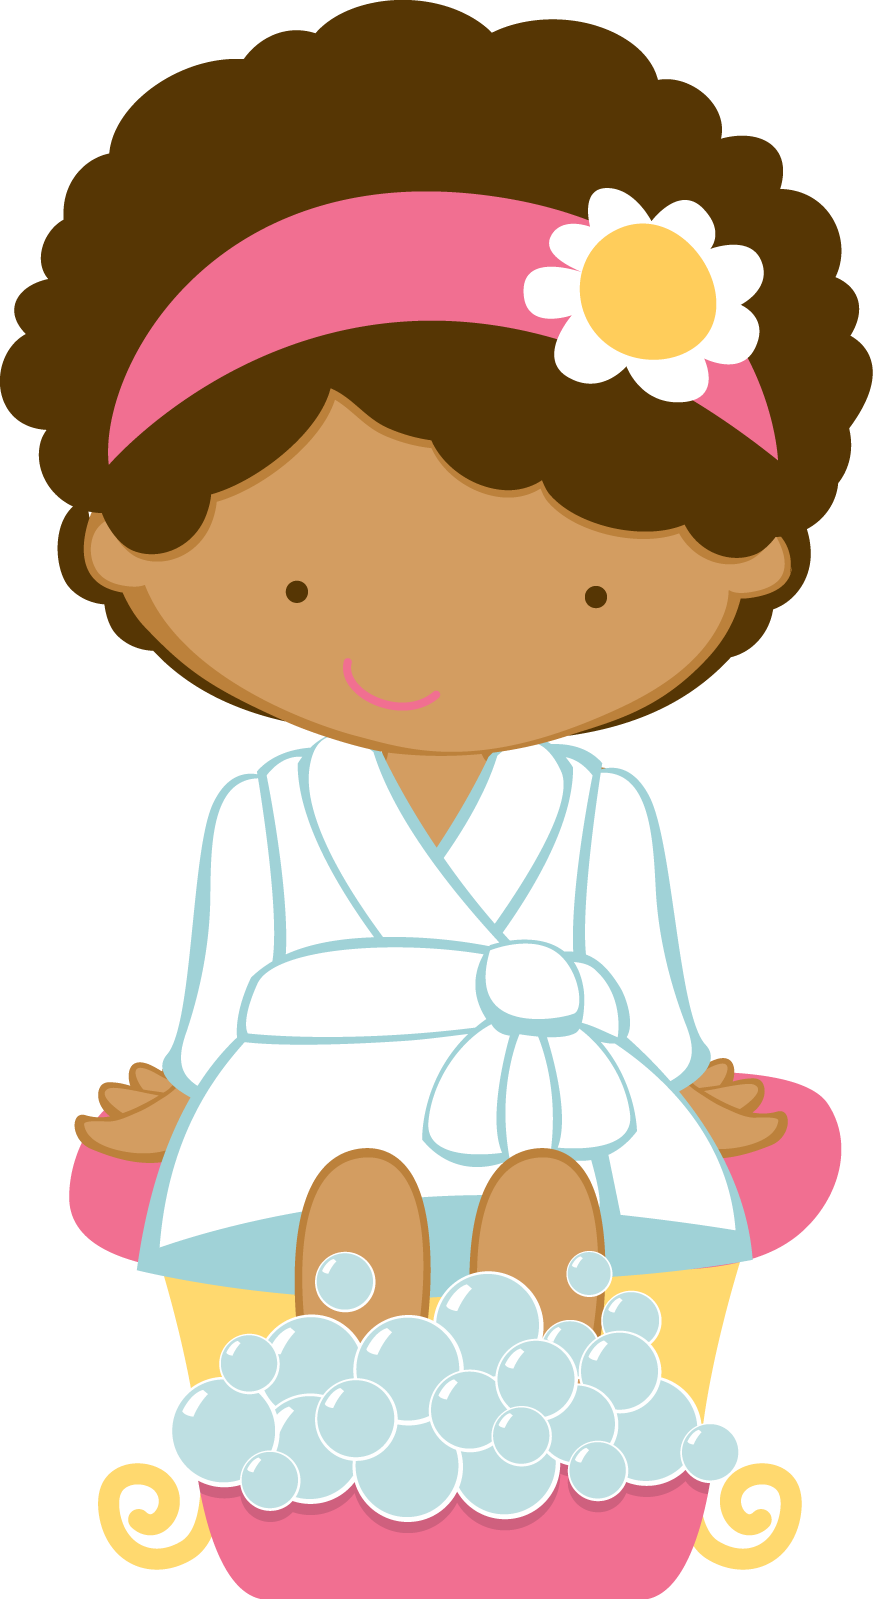 Free spa girl clipart clip art library library Free PNG Spa Transparent Spa.PNG Images. | PlusPNG clip art library library